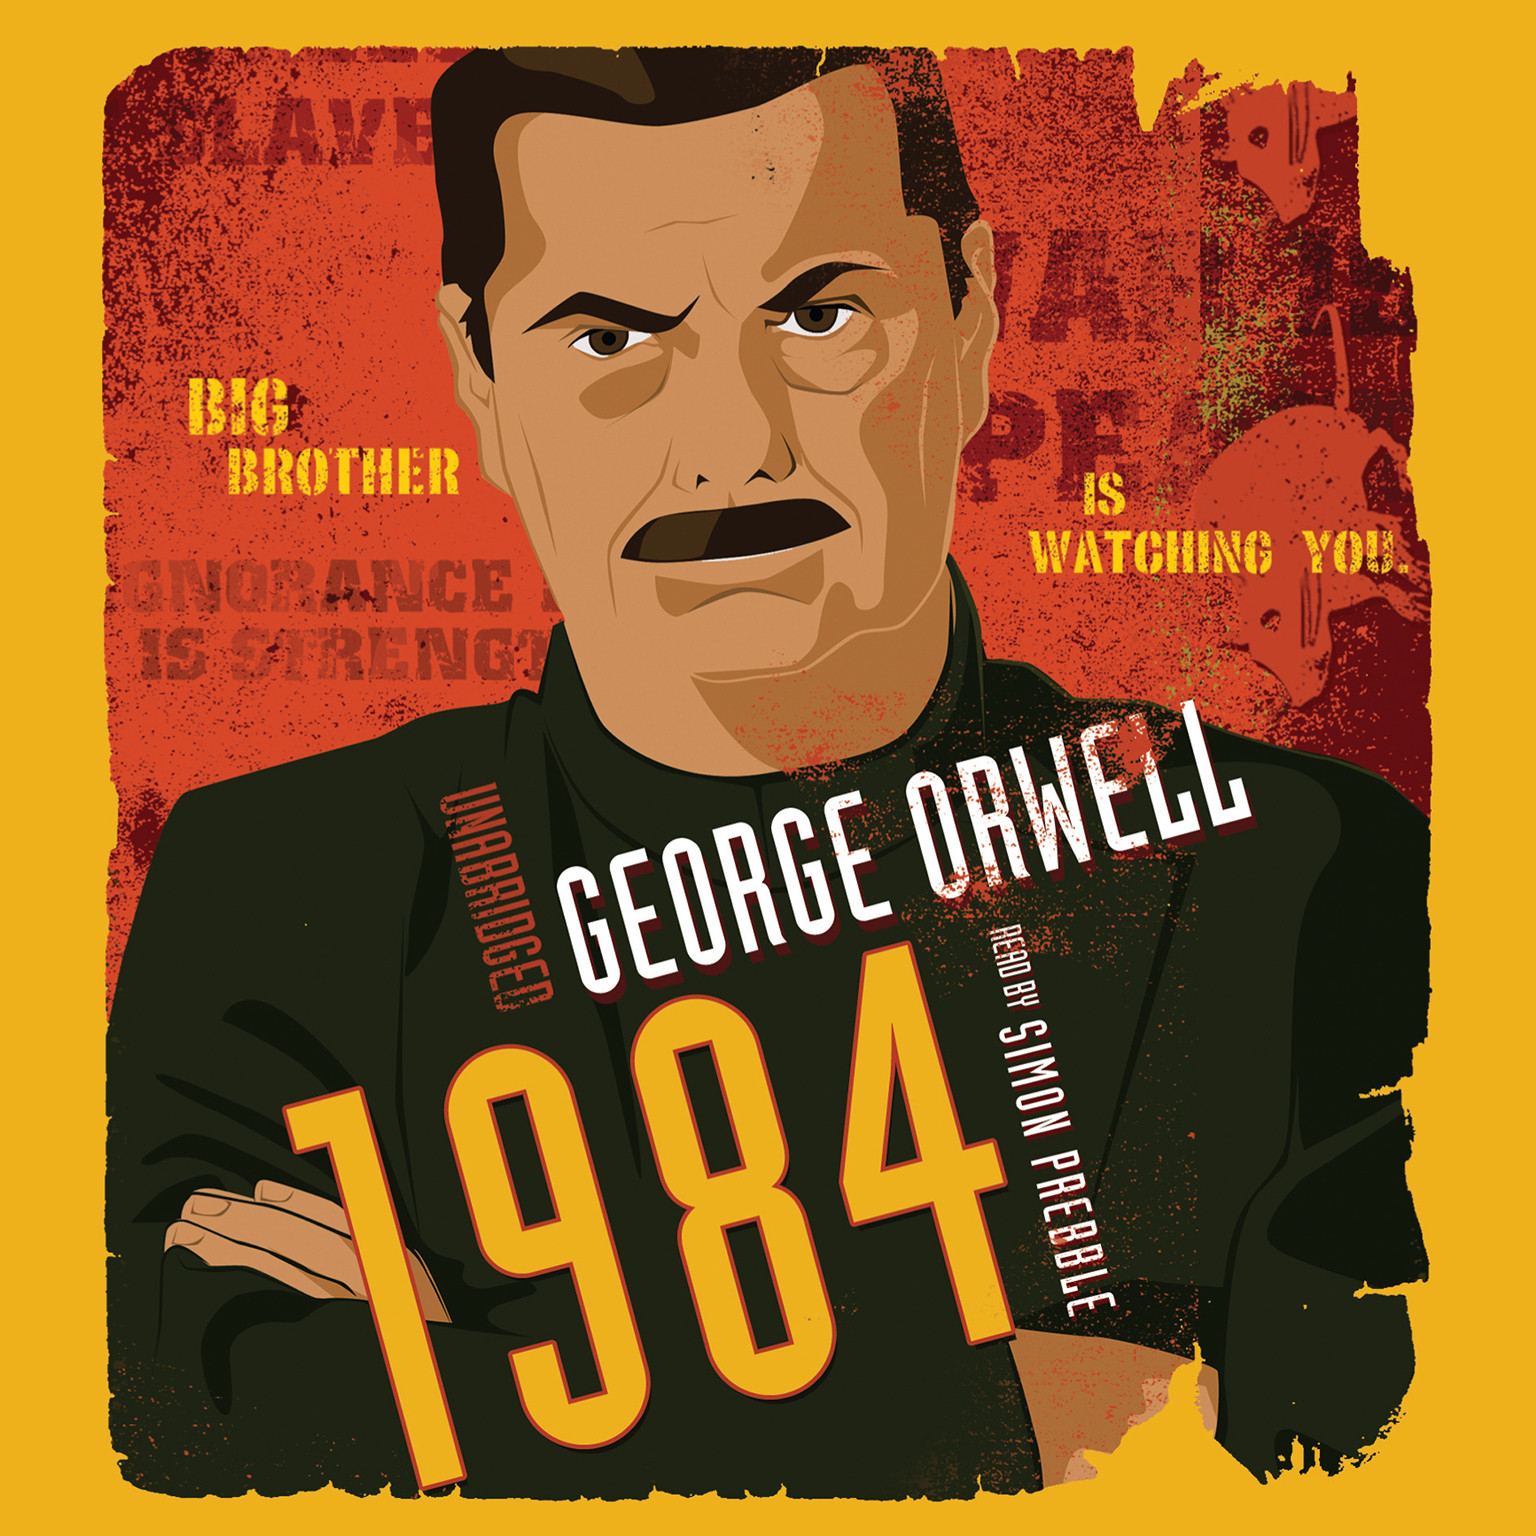 hear audiobook by george orwell for just  extended audio sample 1984 audiobook by george orwell